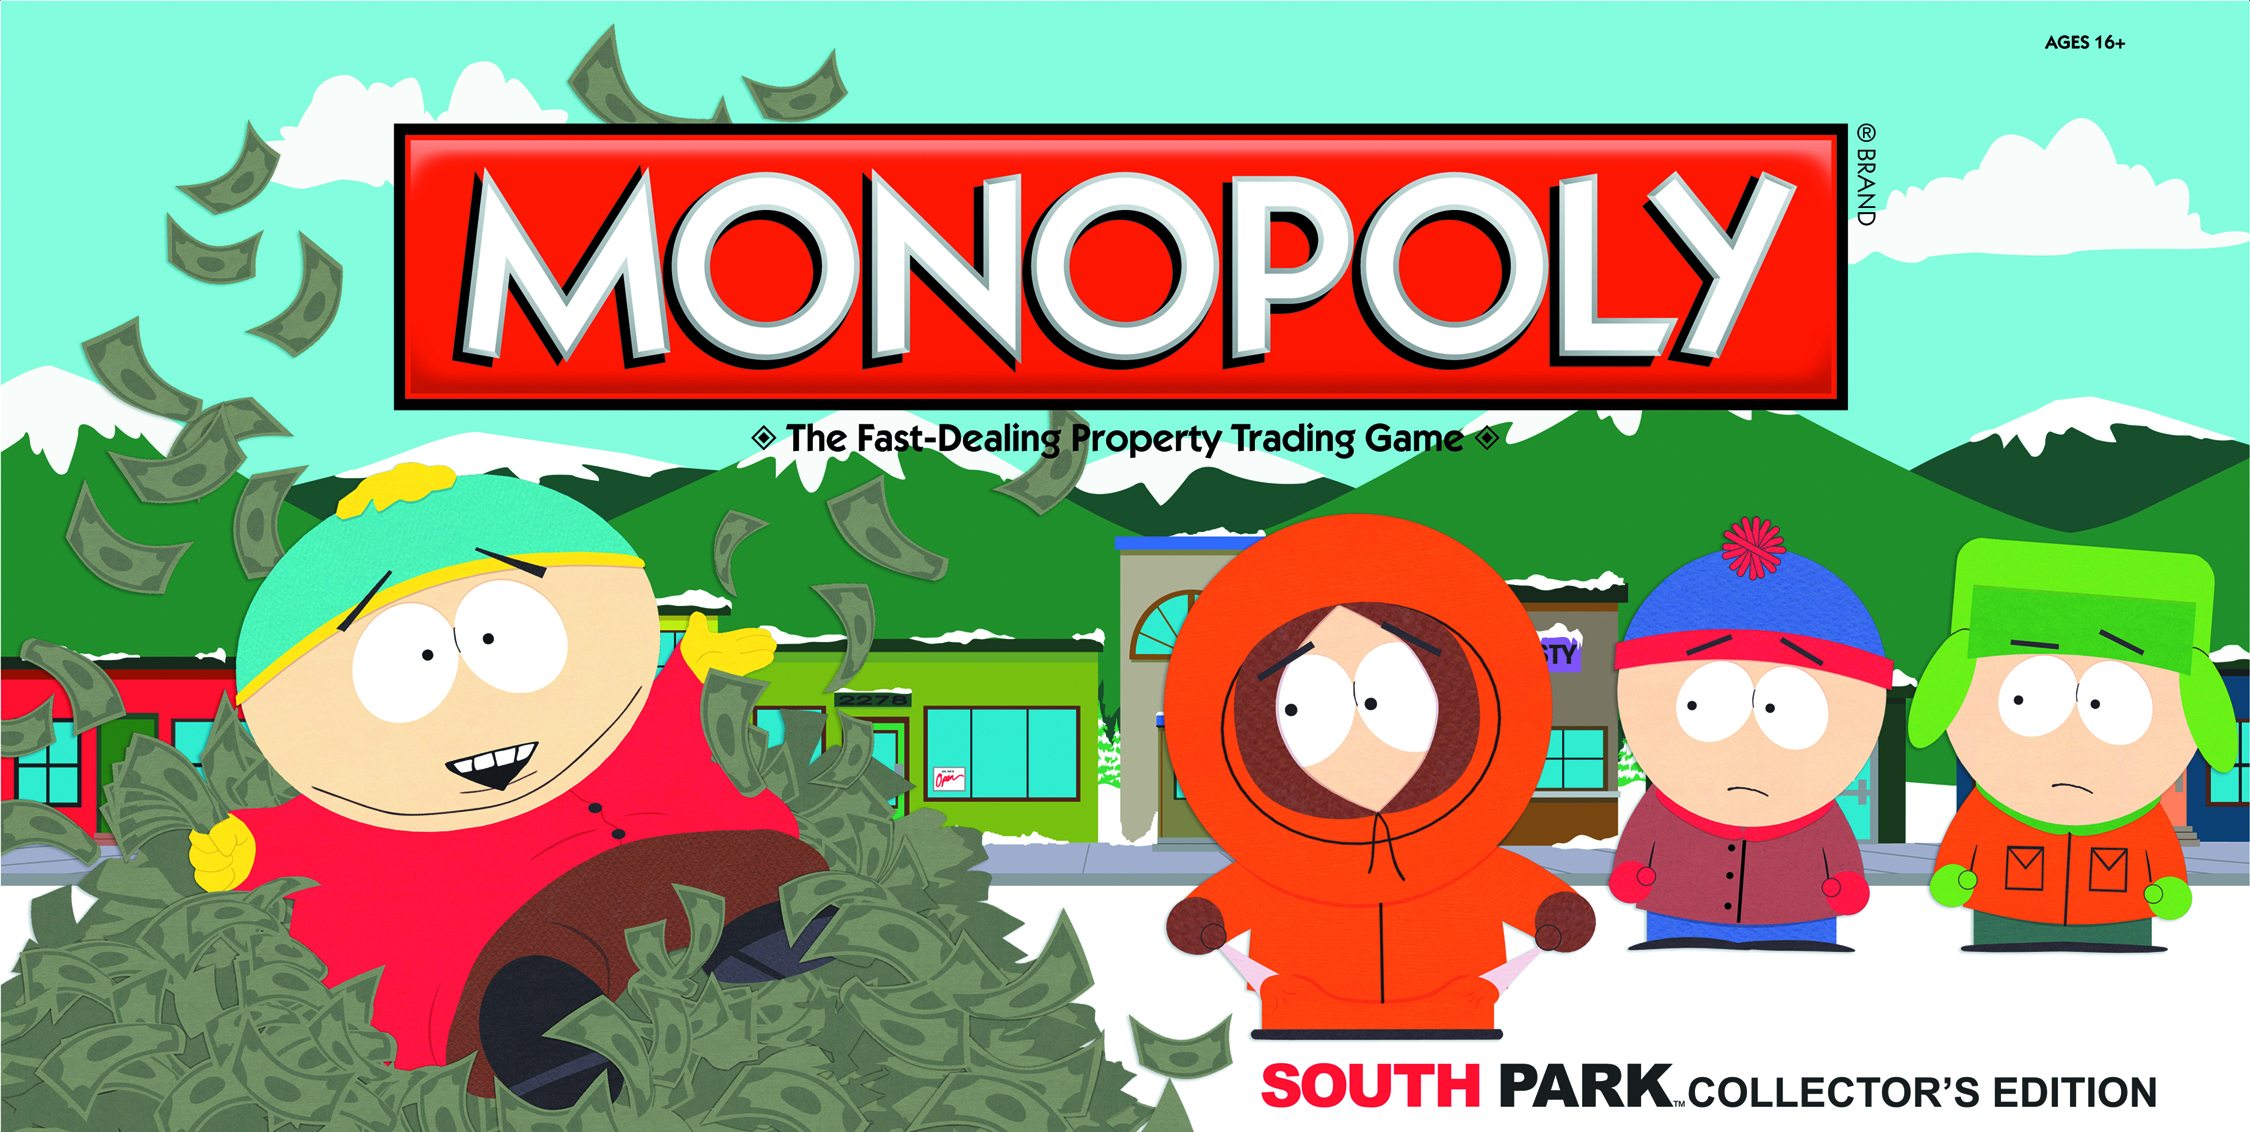 SOUTH PARK COLLECTORS ED MONOPOLY